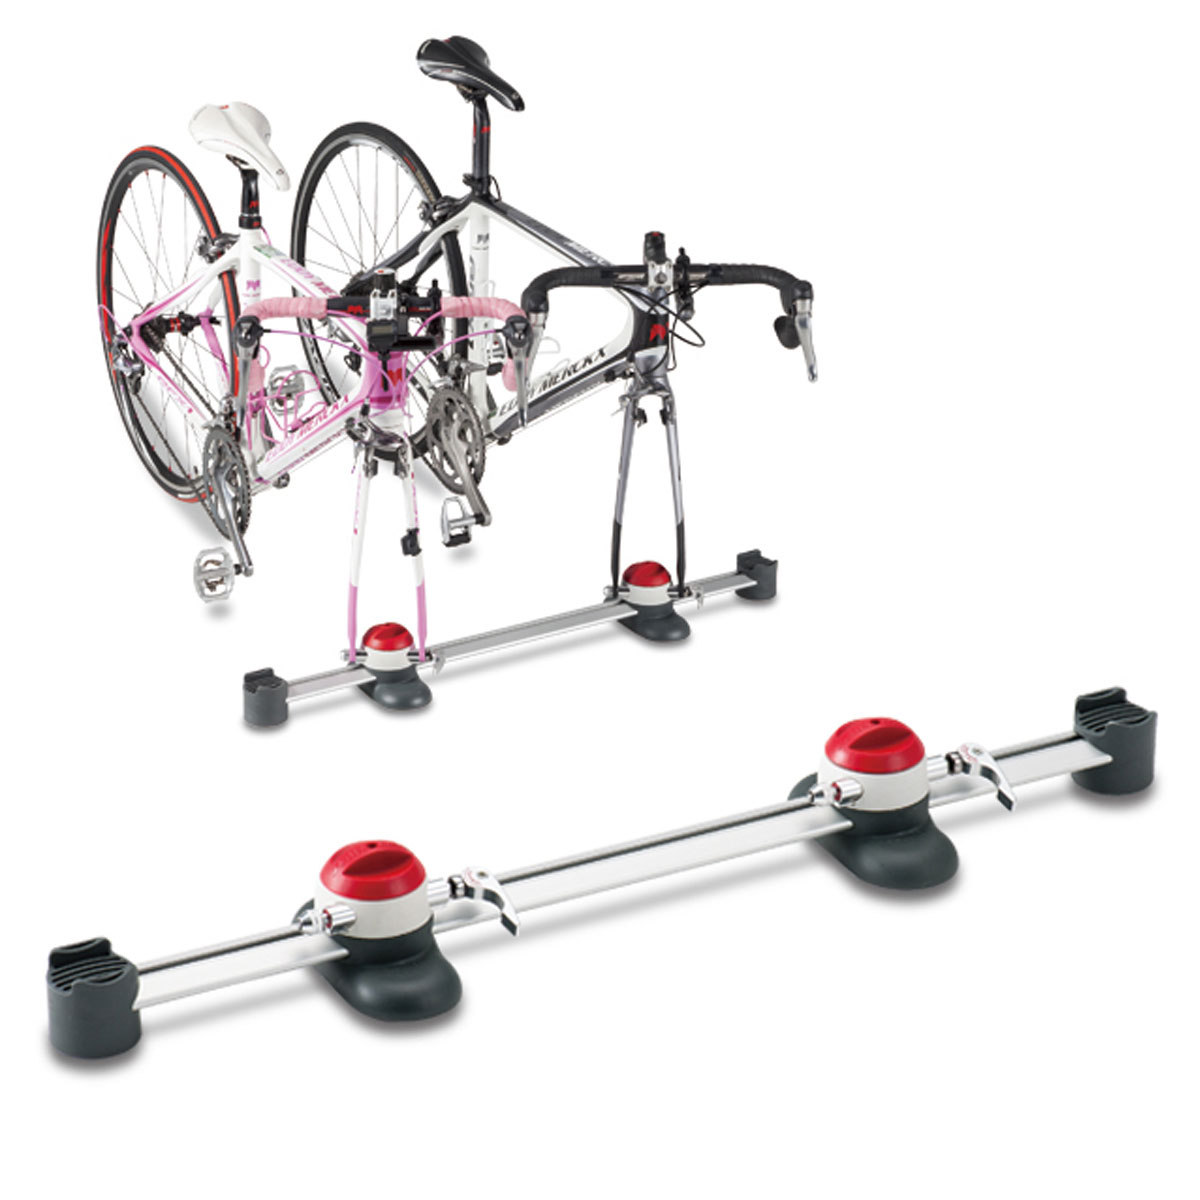 MINOURA Vergo Excel TF2 Bike Rack